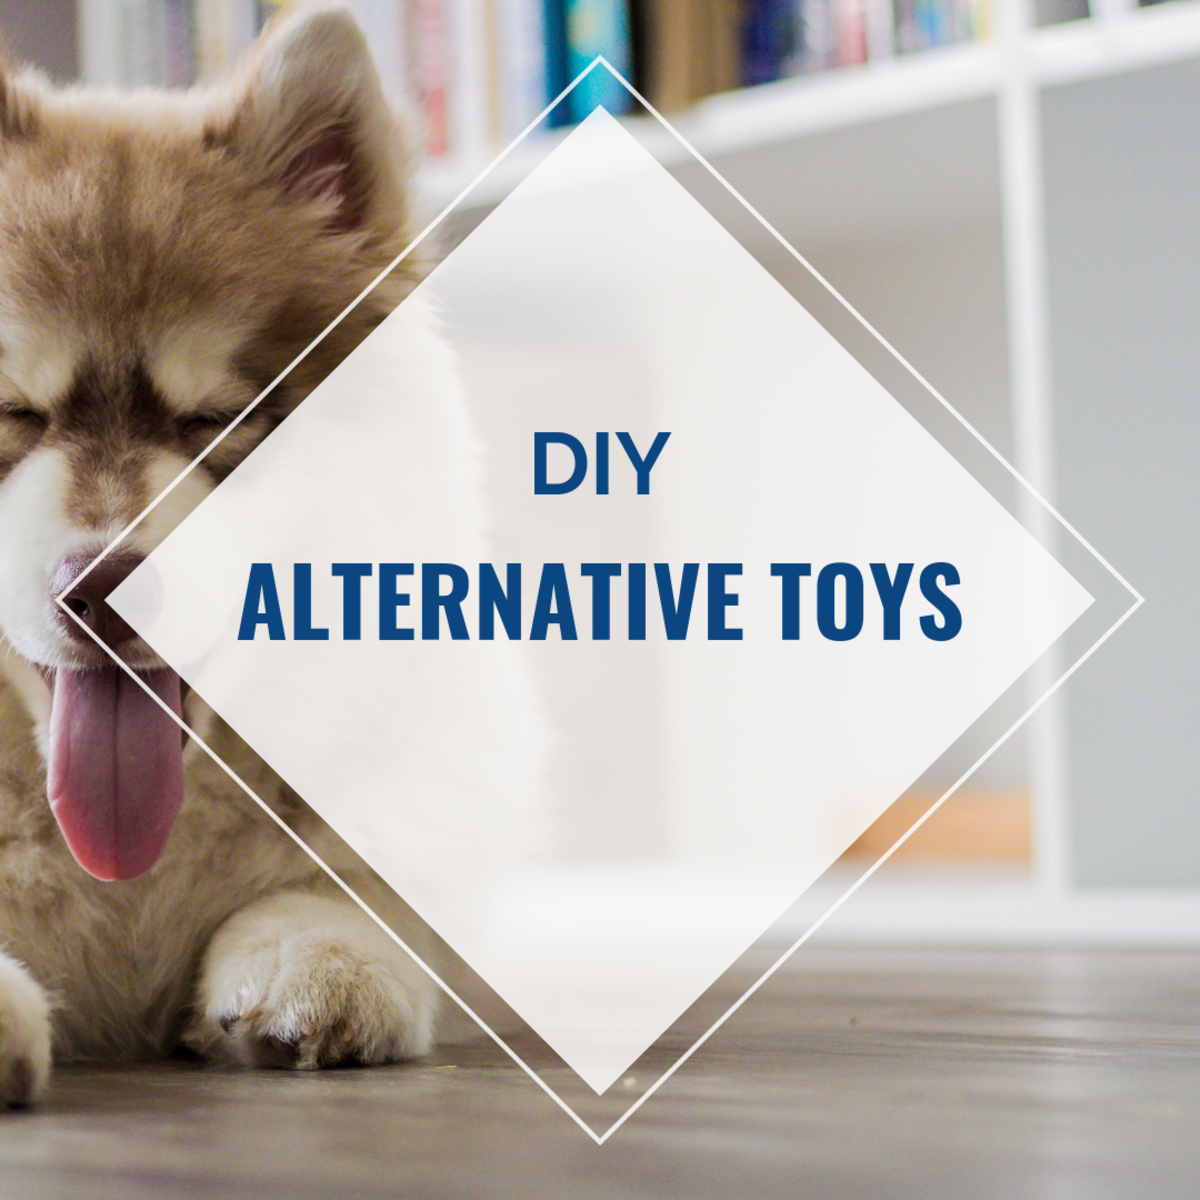 DIY Alternative Toys